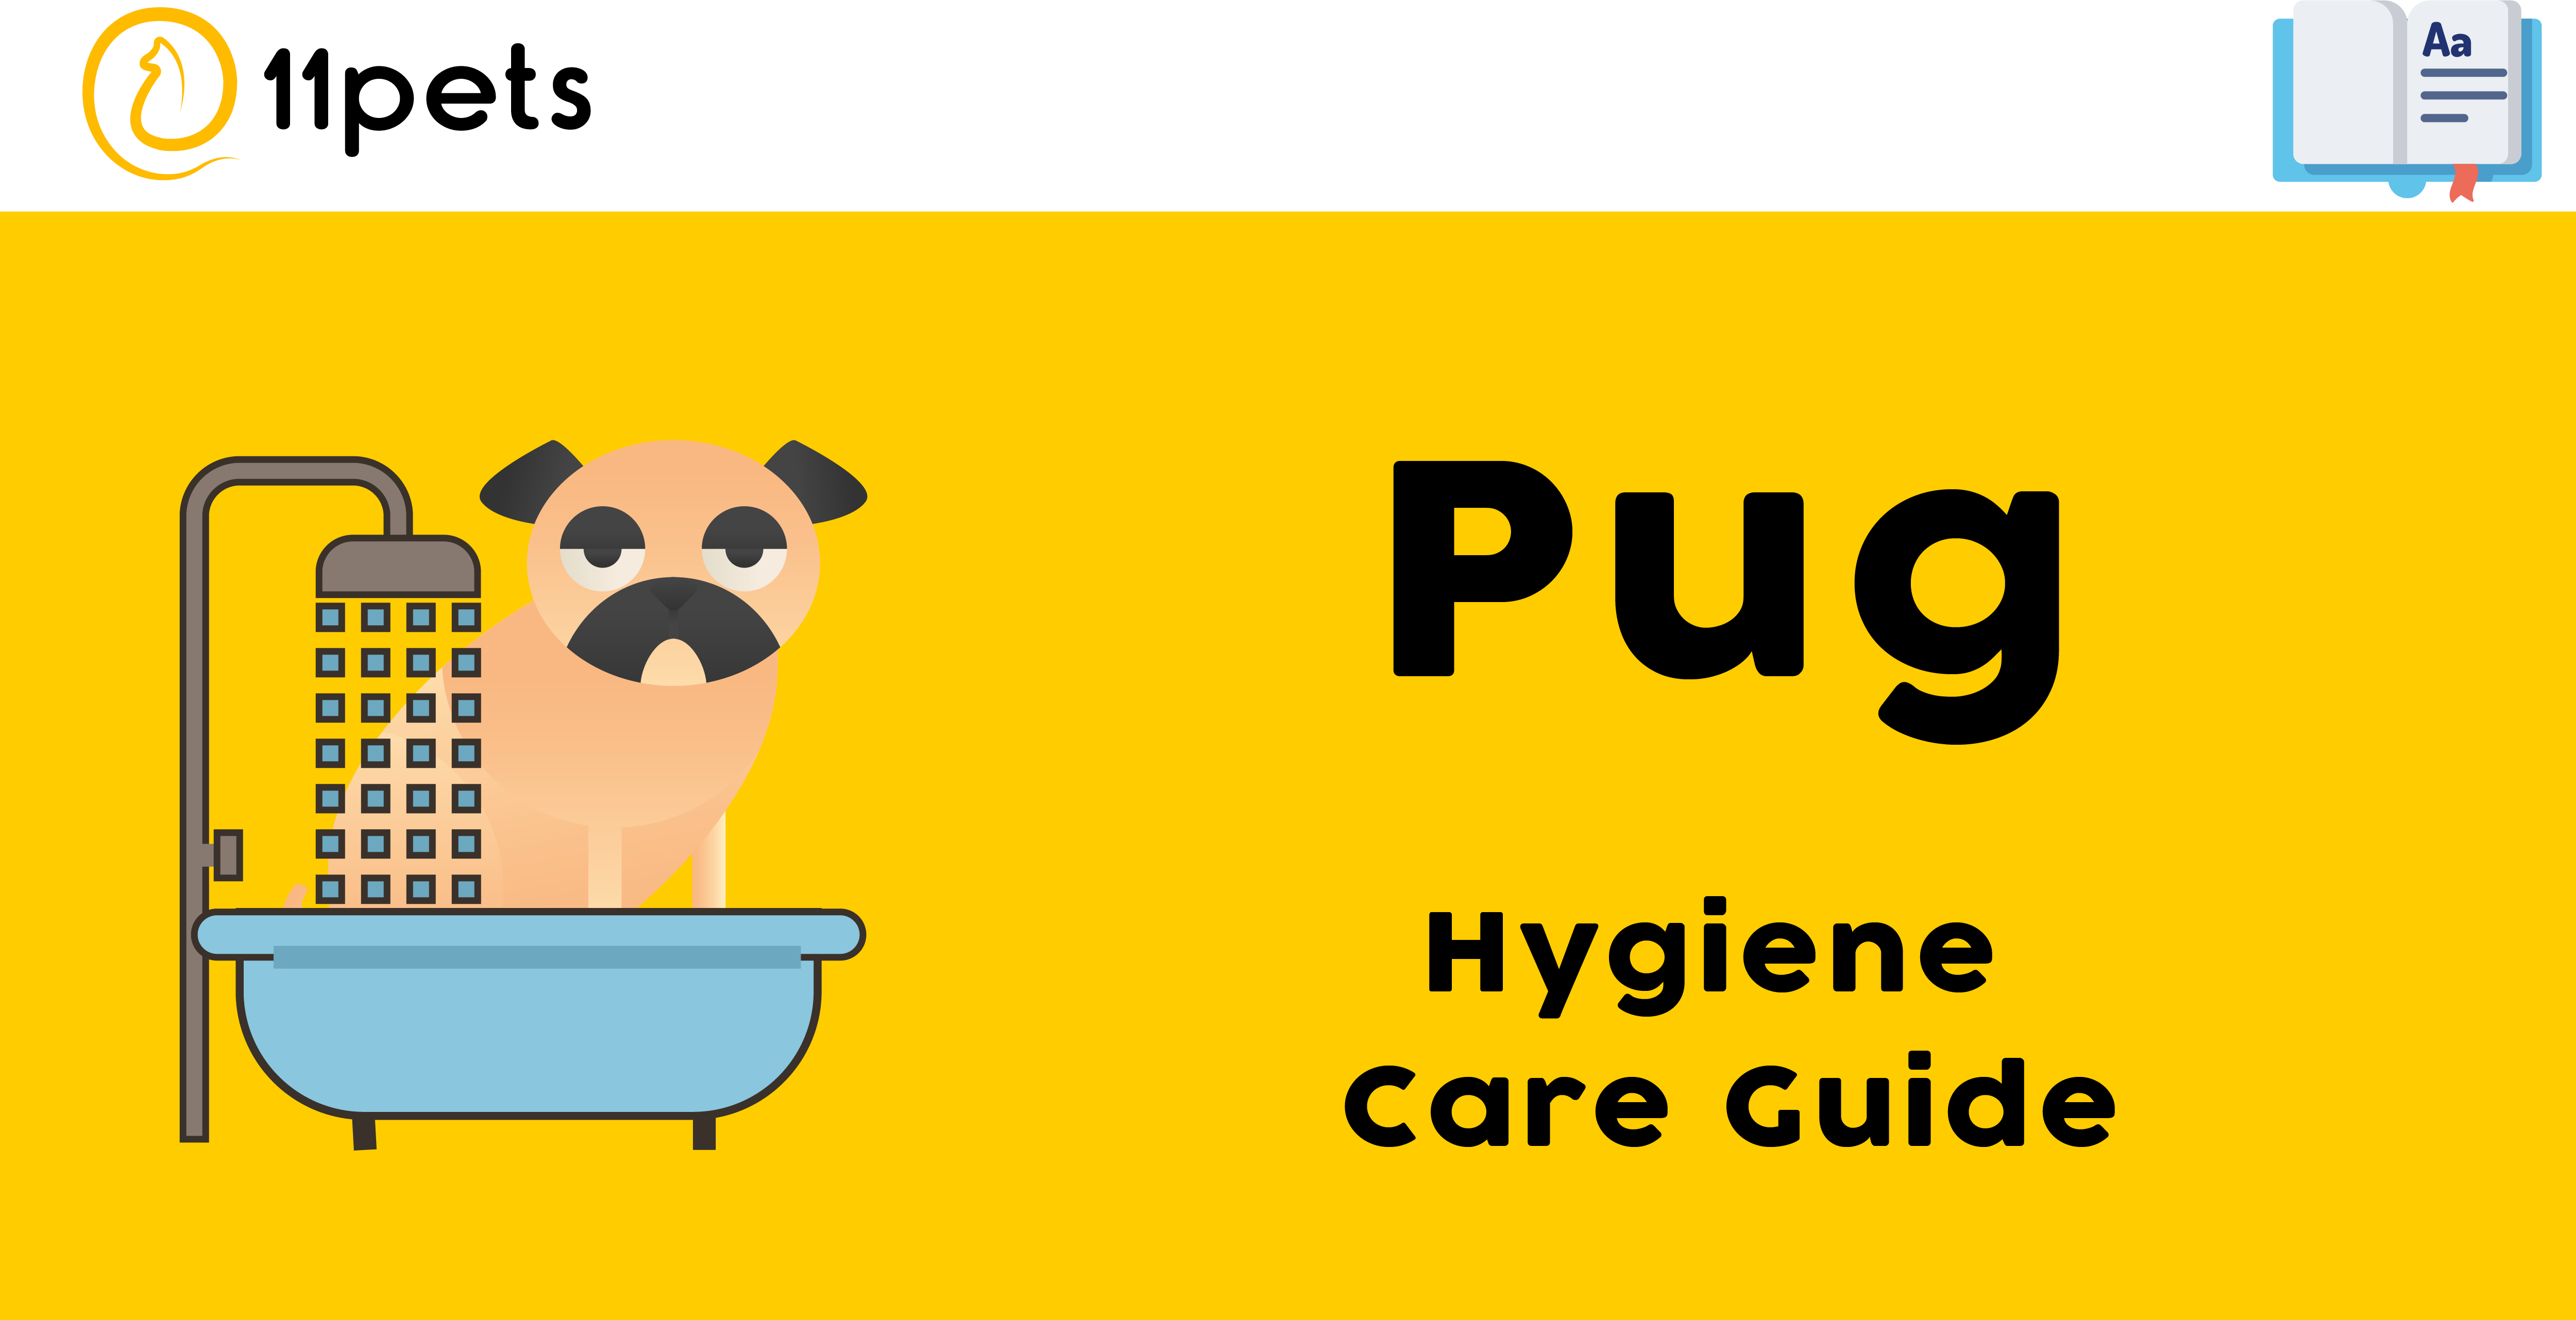 Hygiene Care Guide for Pugs